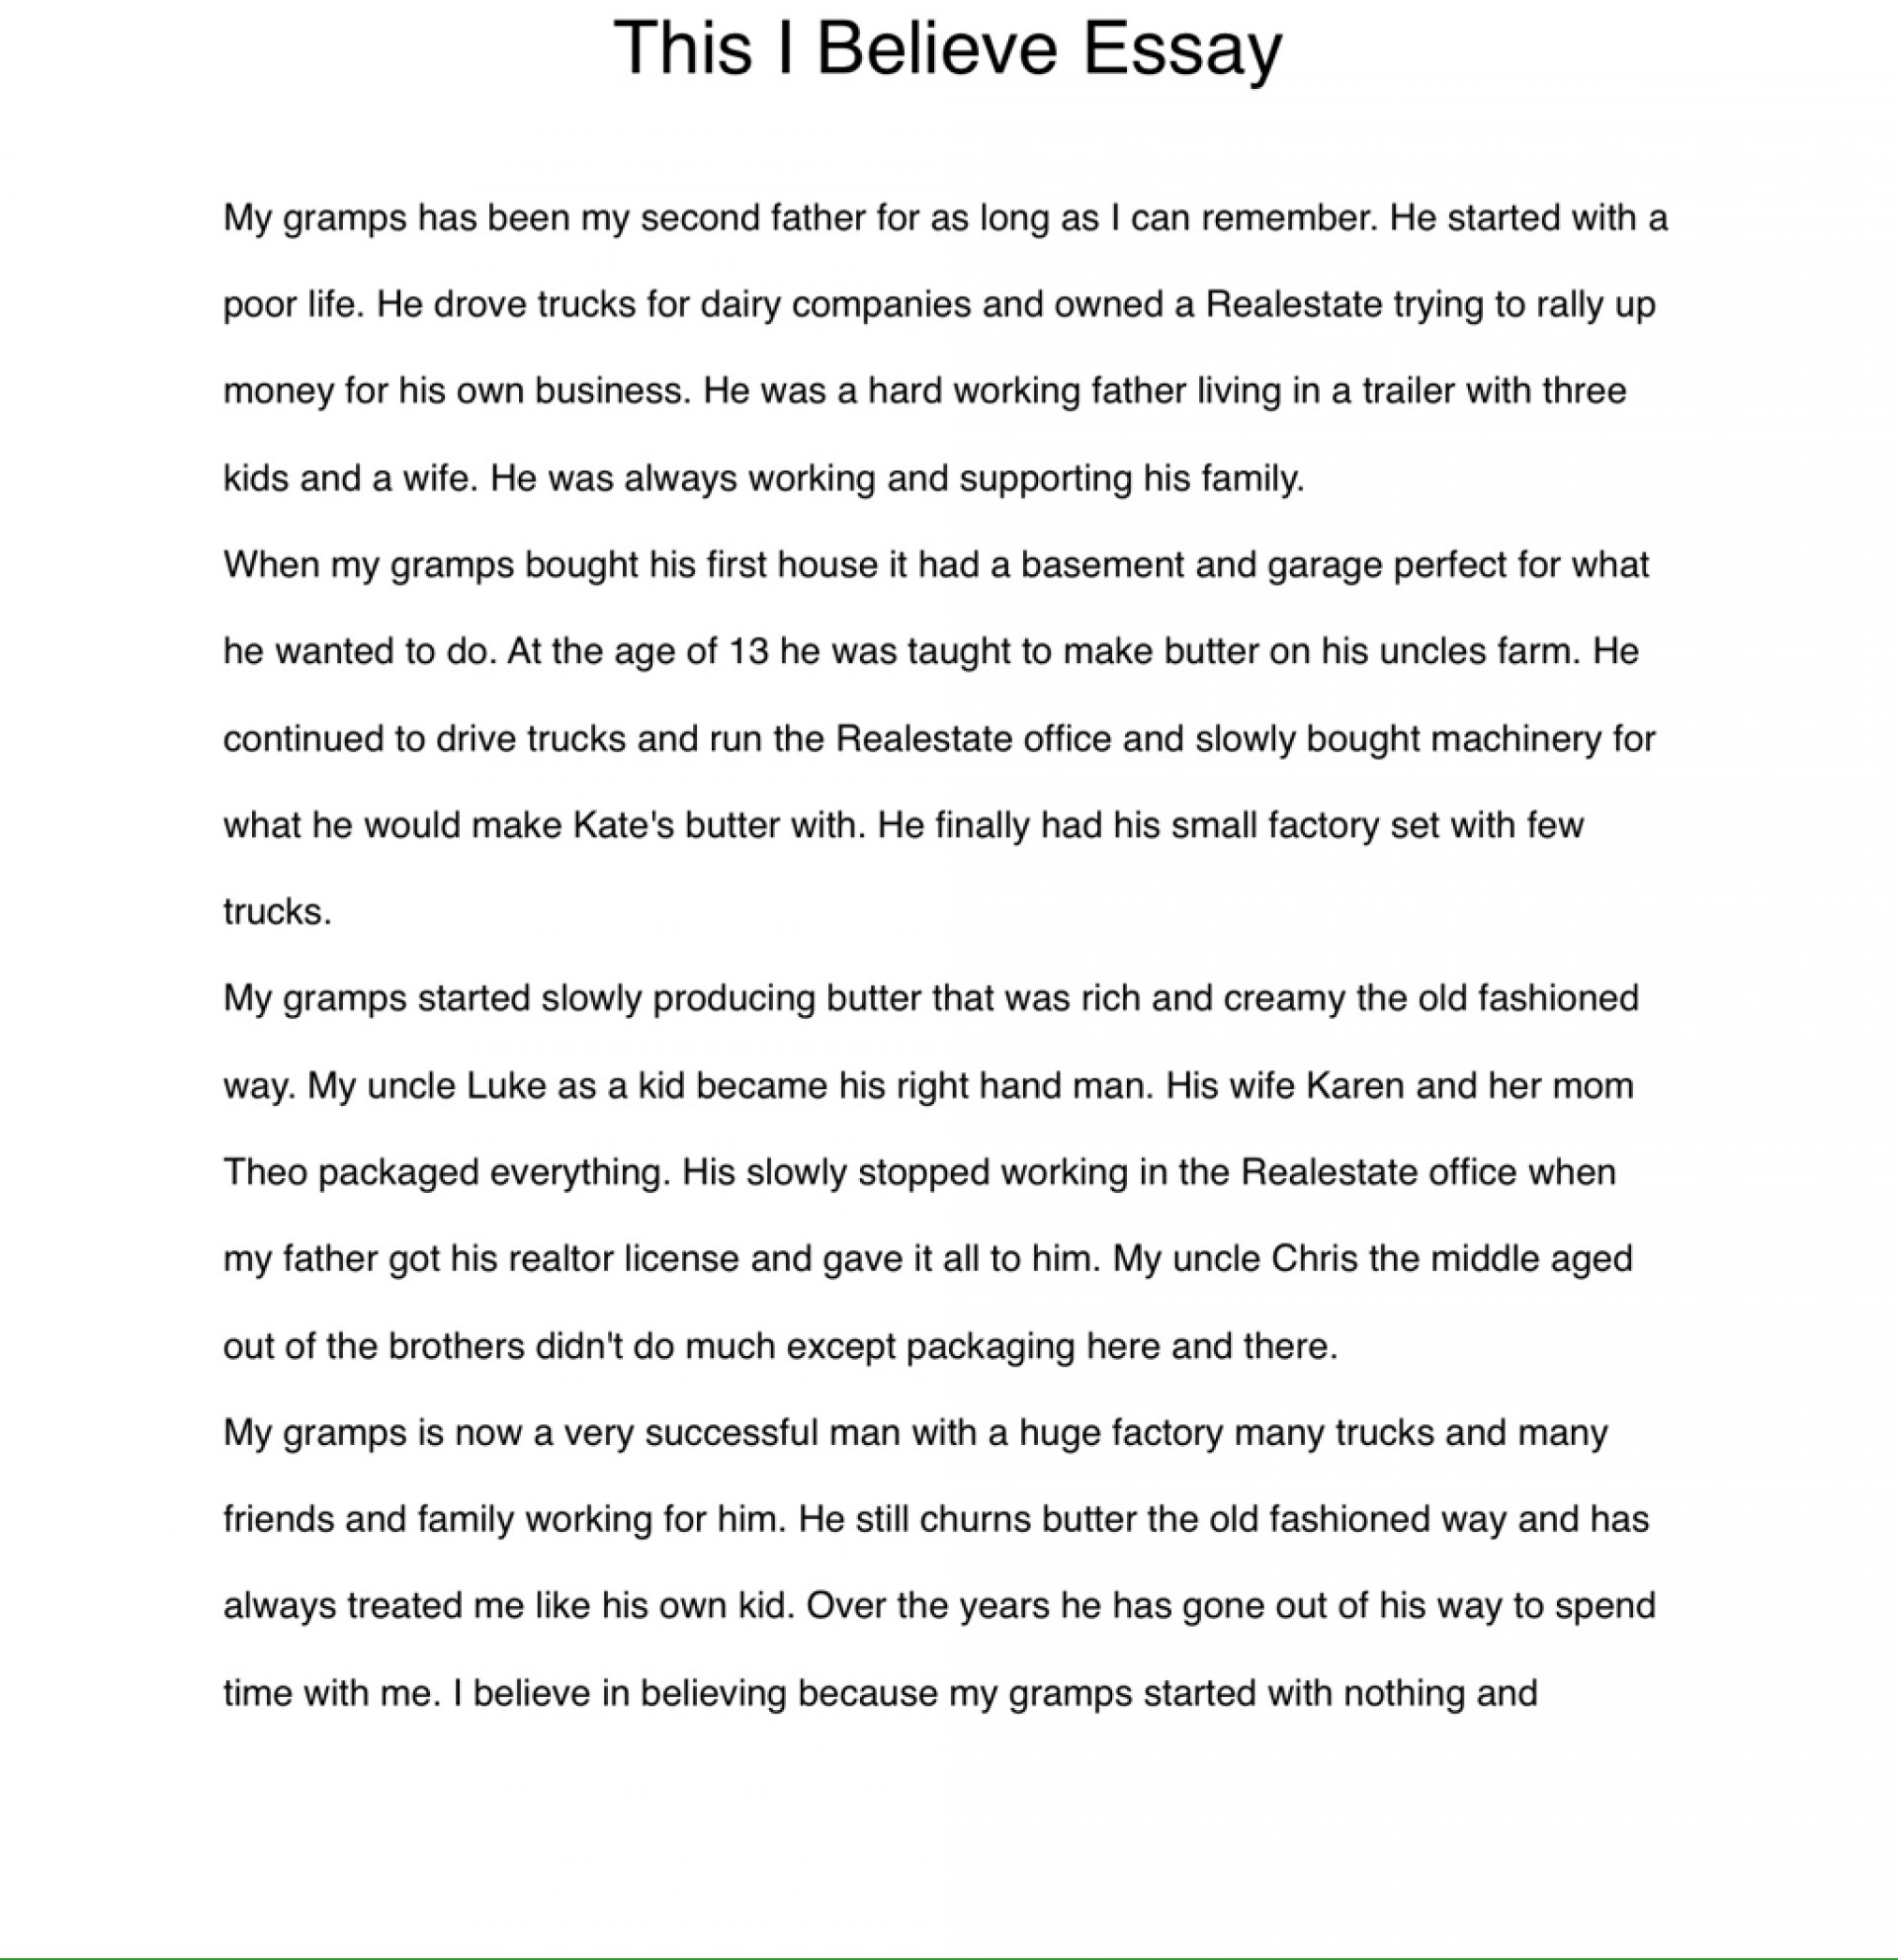 001 This I Believe Essay Ideass Professional Resume Templates High School Outstanding Ideas 1920